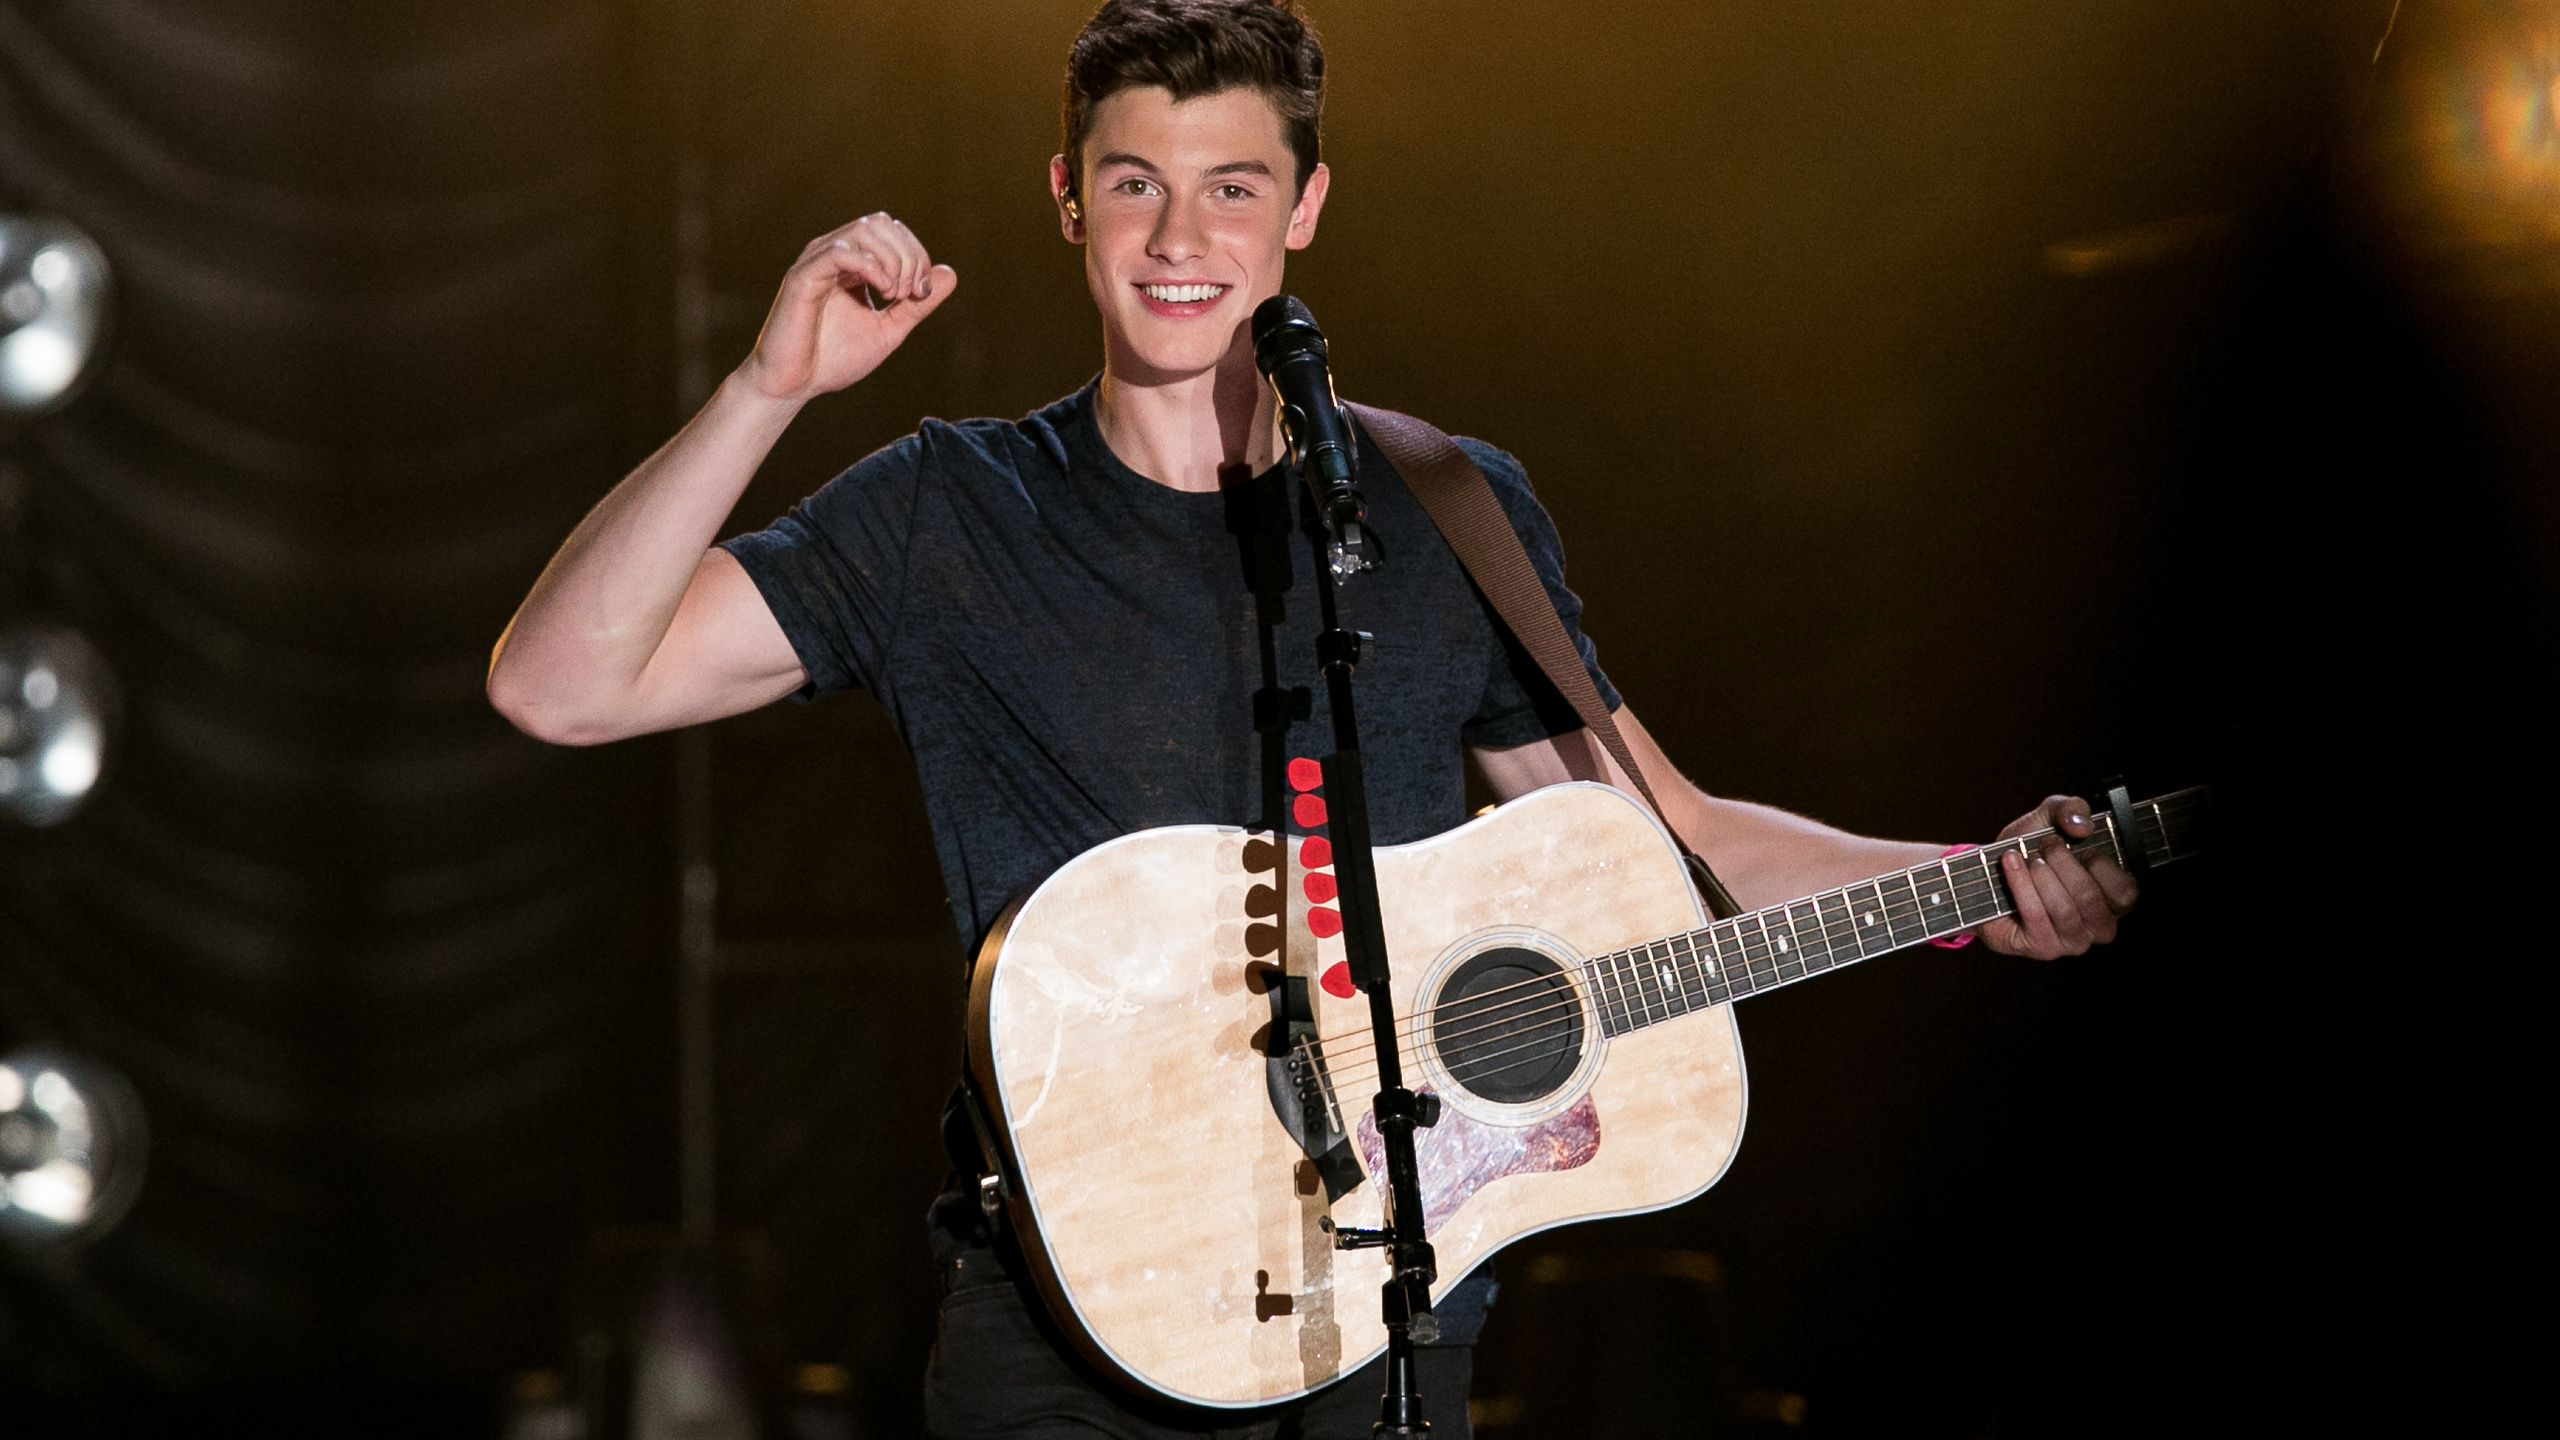 2560x1440 Shawn Mendes Wallpapers Hd